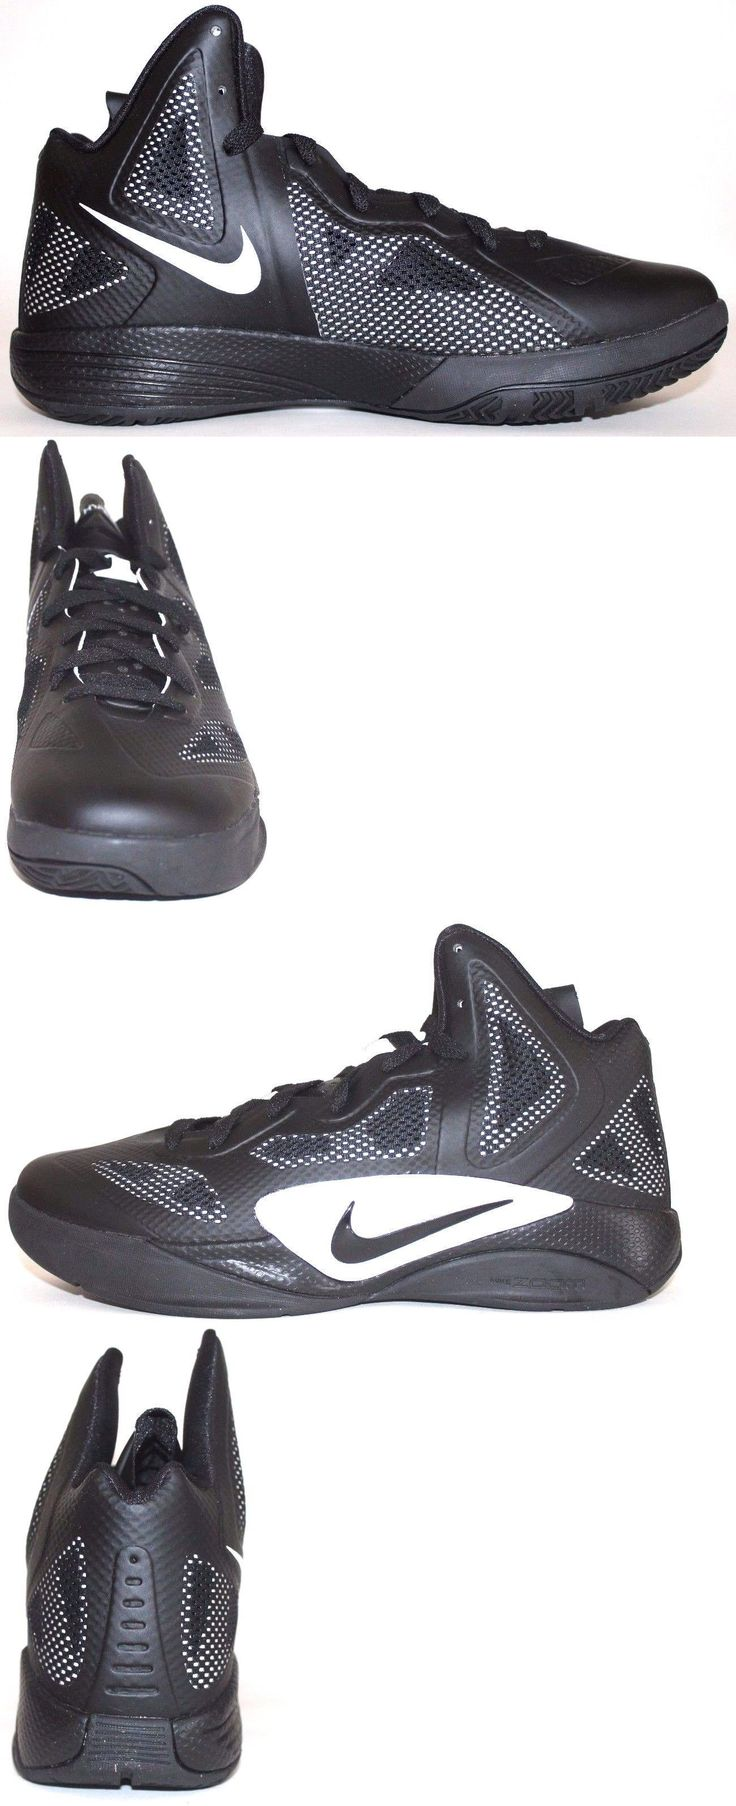 Basketball: Nike 454146 001 Zoom Hyperfuse Tb Mens Basketball Shoes 10 Us Eur 44 -> BUY IT NOW ONLY: $48.99 on eBay!